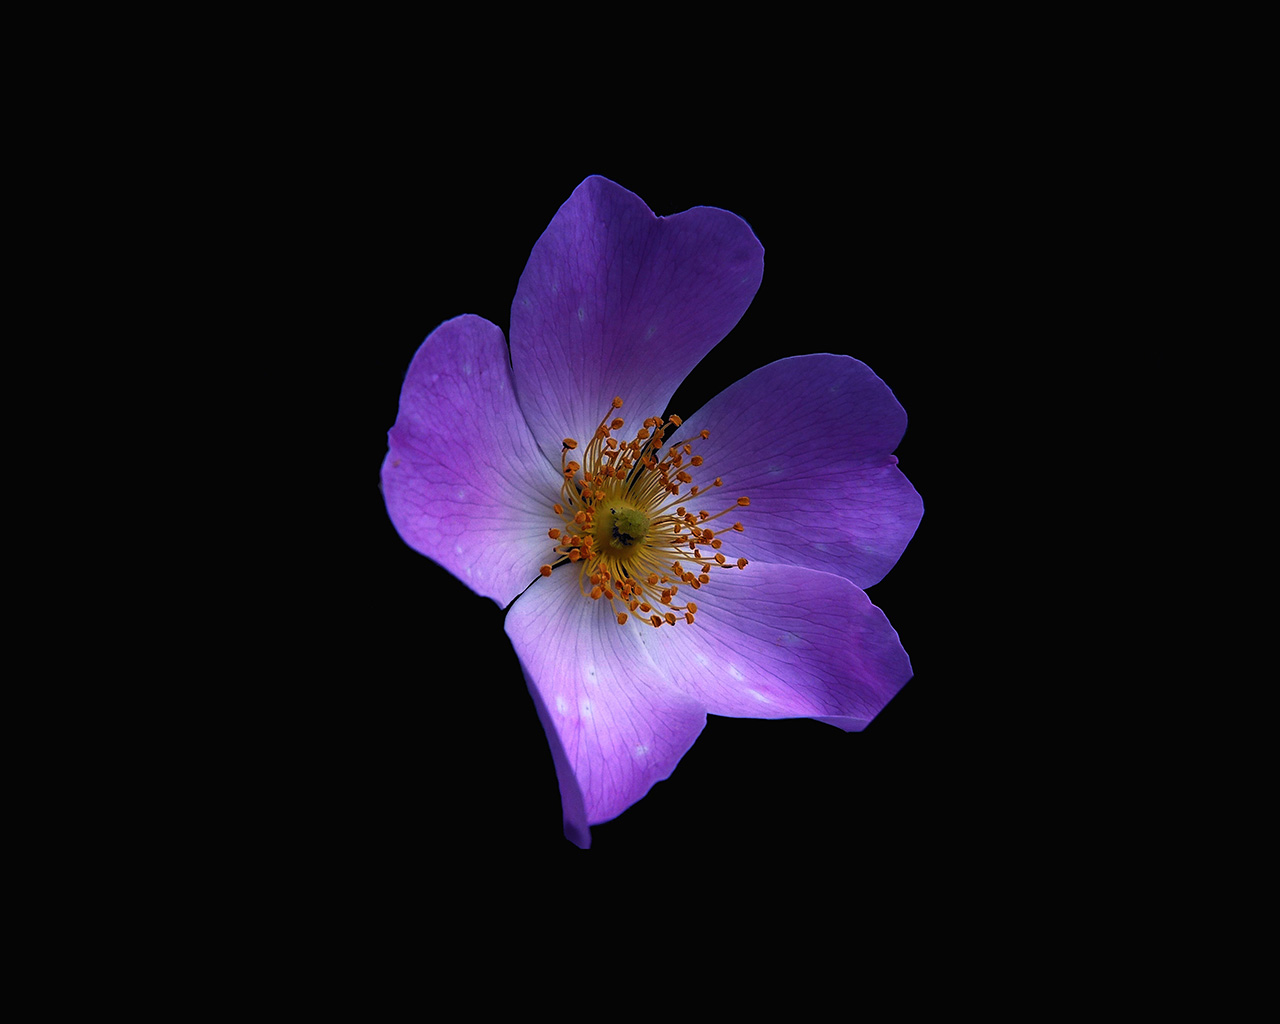 Nr38-macro-flower-dark-purple-nature-wallpaper